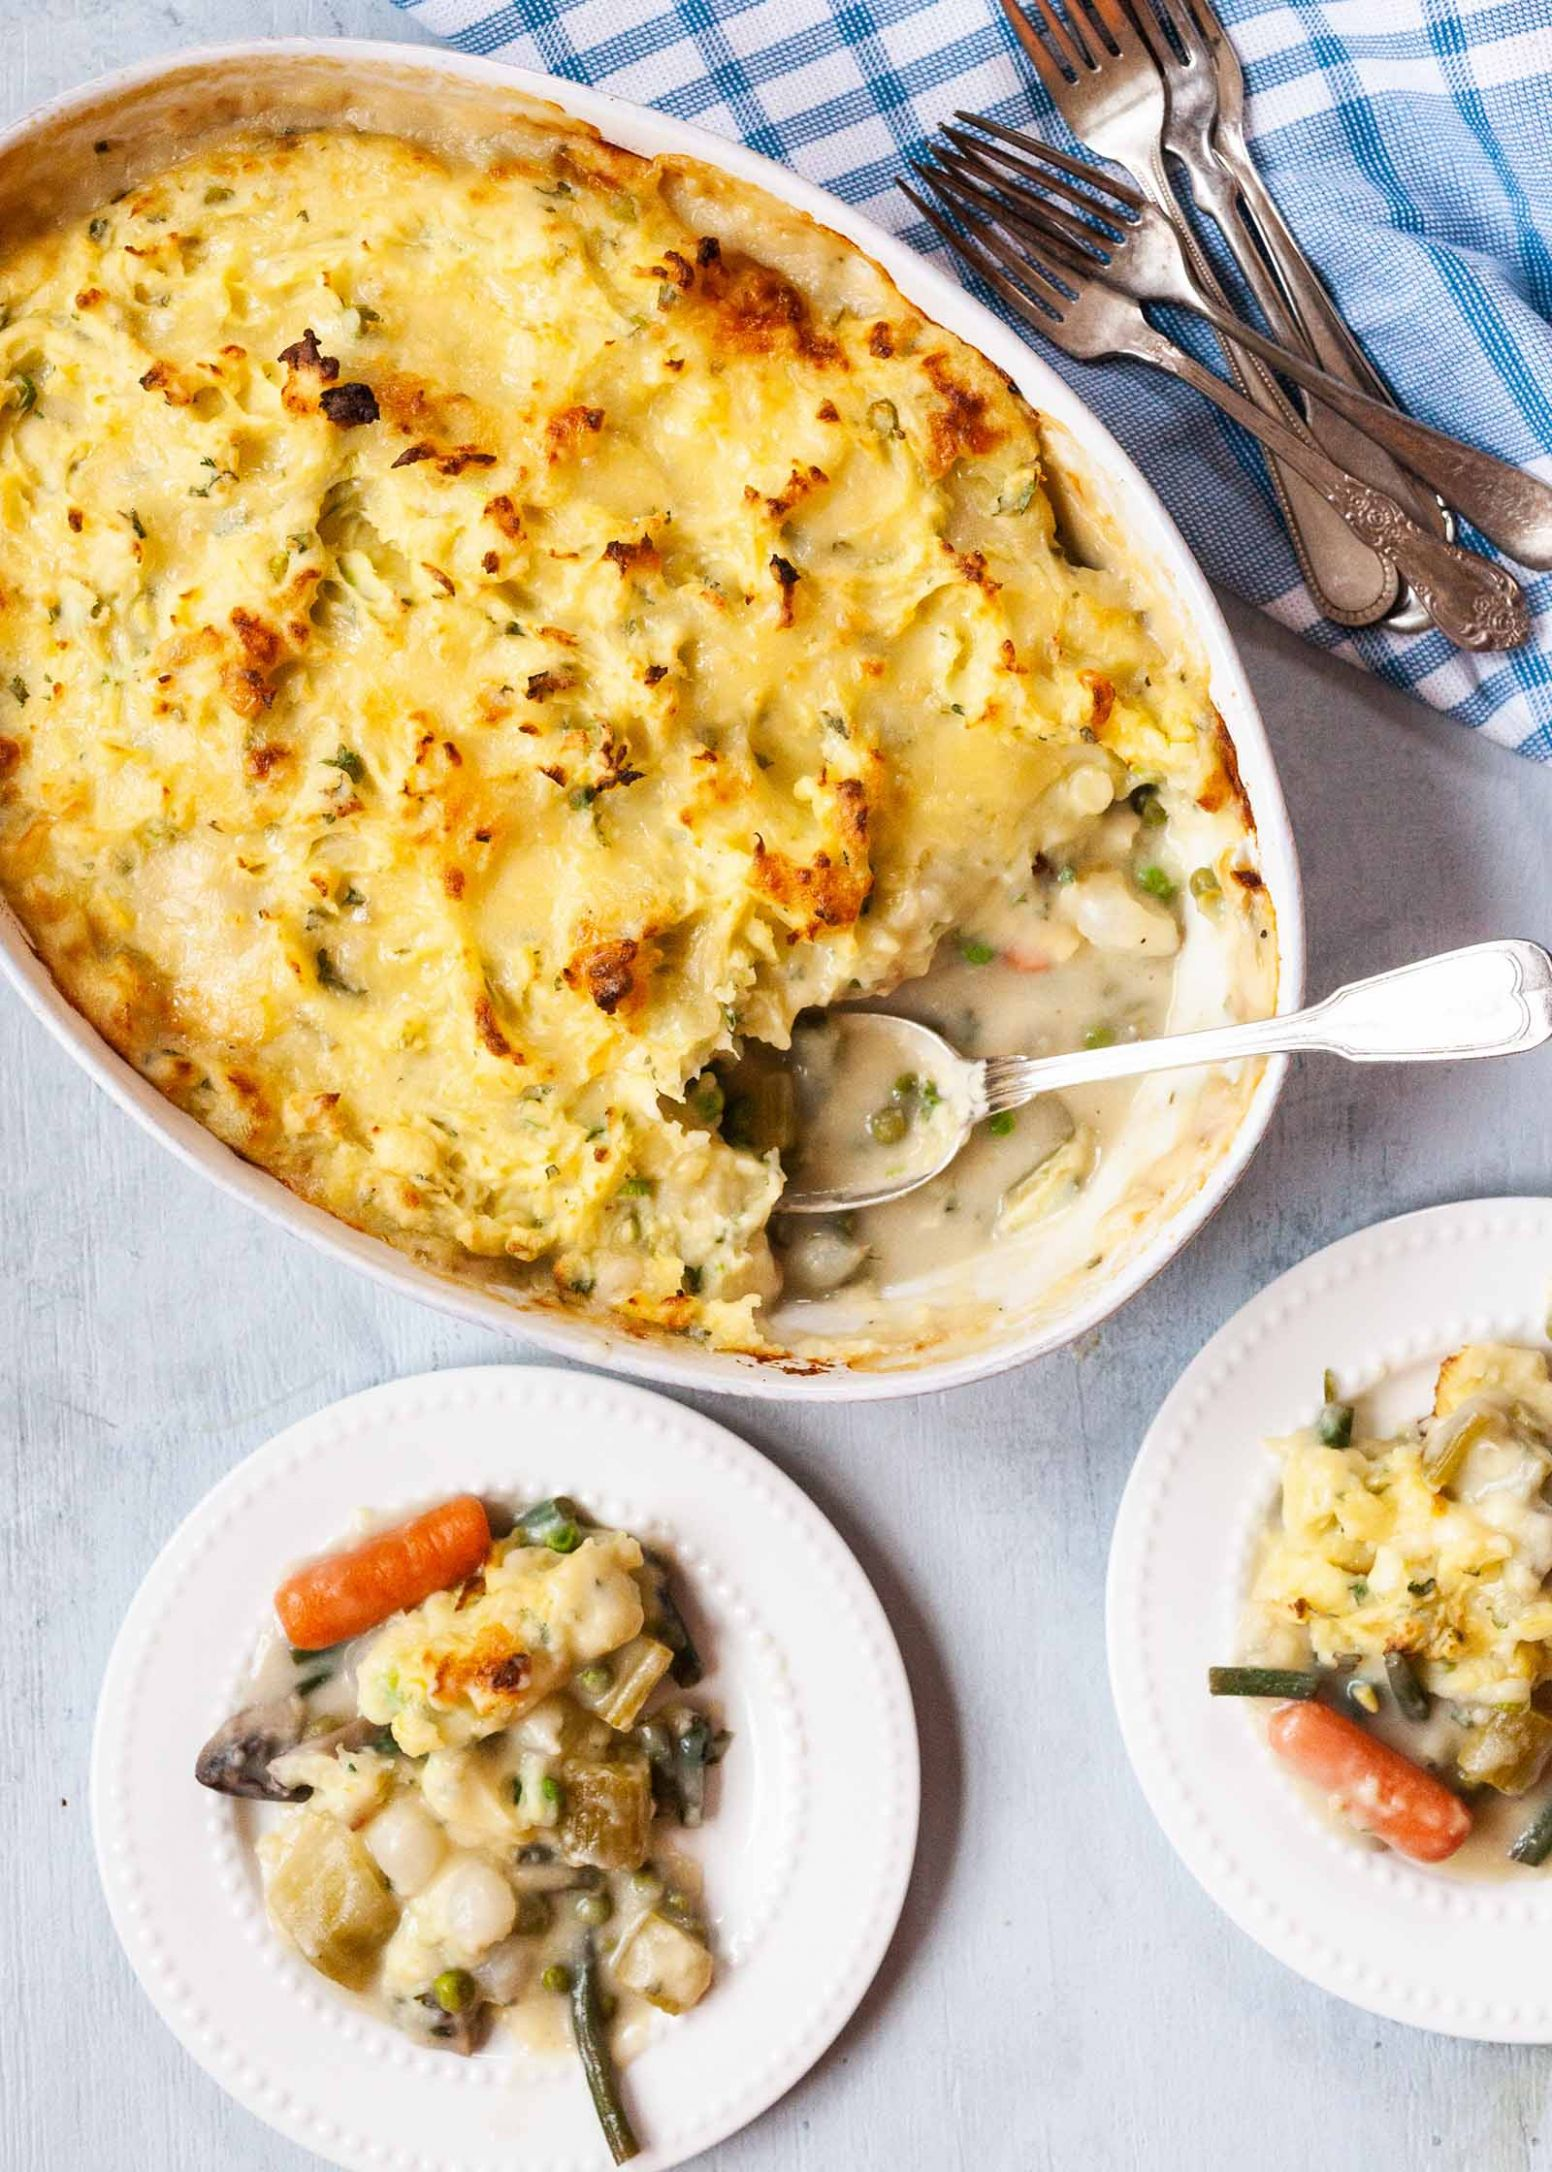 Vegetarian Shepherd's Pie with Carrots and Mushrooms